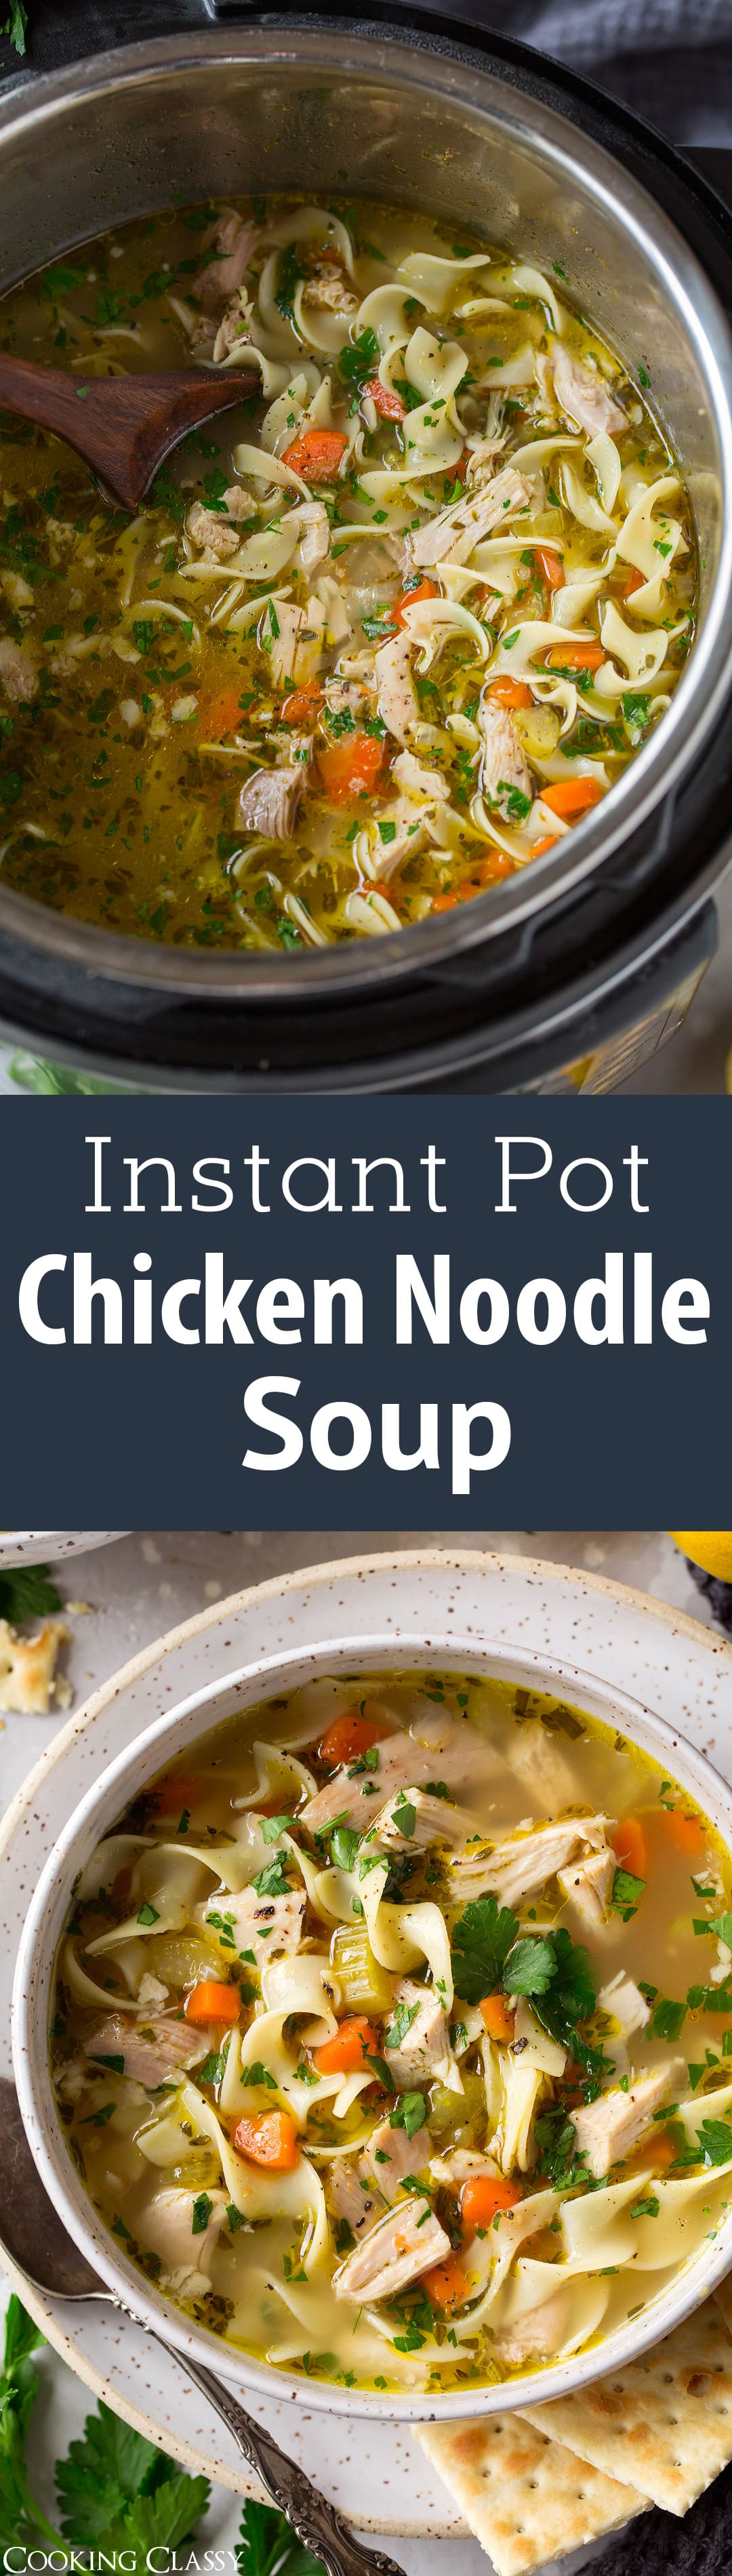 Instant Pot Chicken Noodle Soup - This is likely to become your new go-to chicken noodle soup! So easy to make yet the end result tastes amazing! It's a homestyle chicken noodle soup everyone will love, and you'll love how the instant pot does almost all of the work. #instantpot #chickennoodlesoup #dinner #comfortfood #soup #recipe